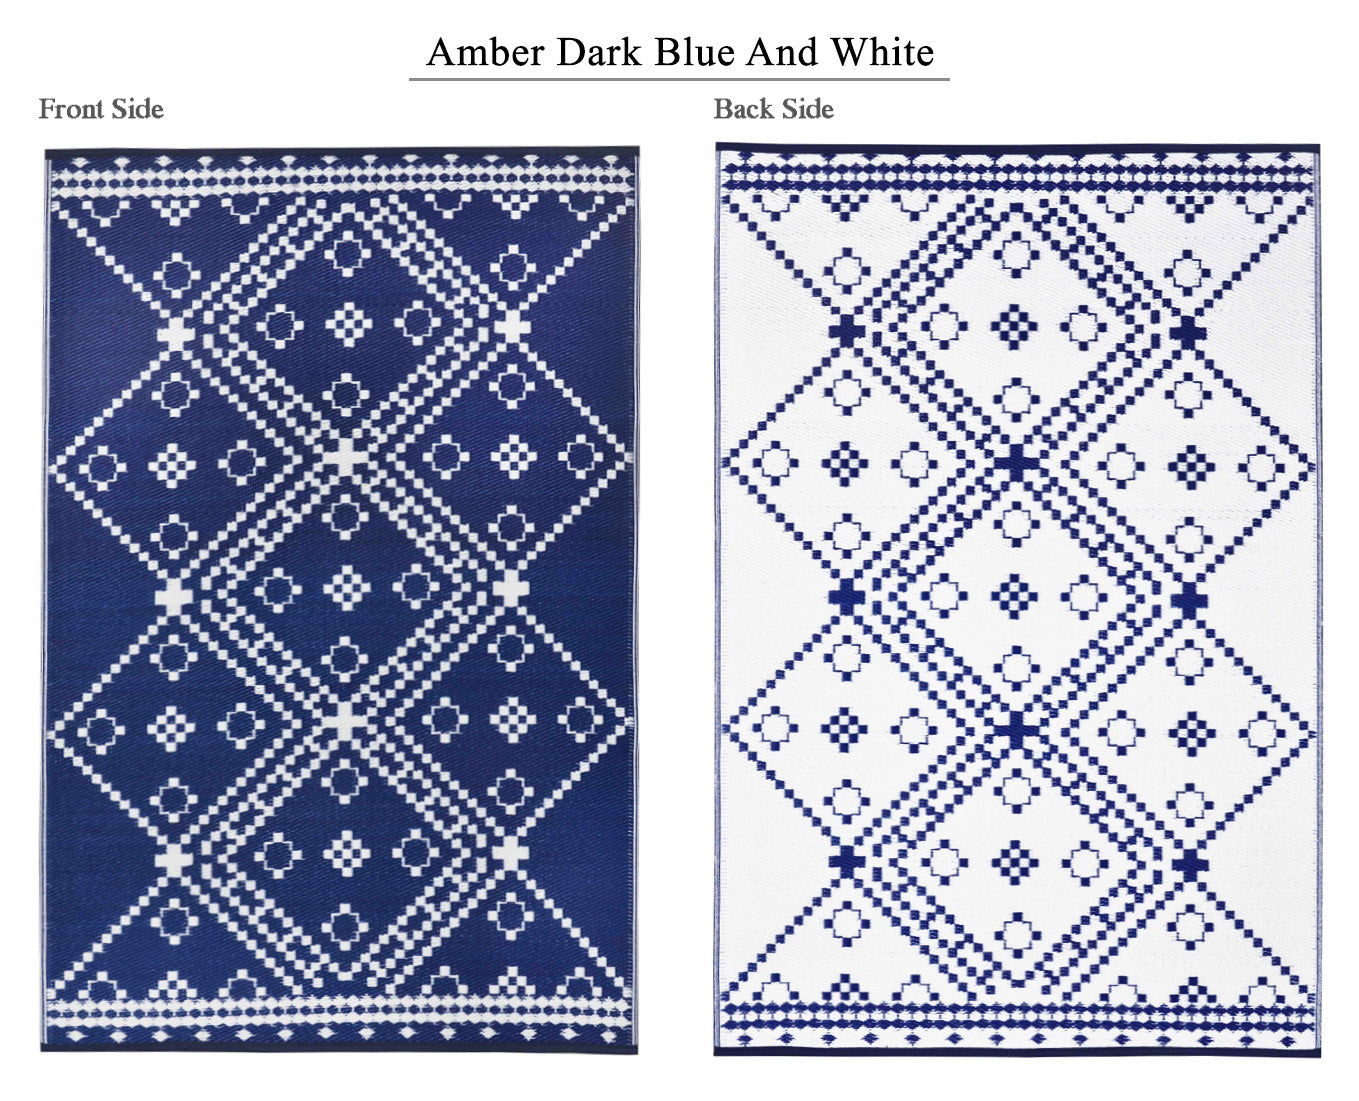 Amber Outdoor Recycled Plastic Rug (Dark Blue/White)